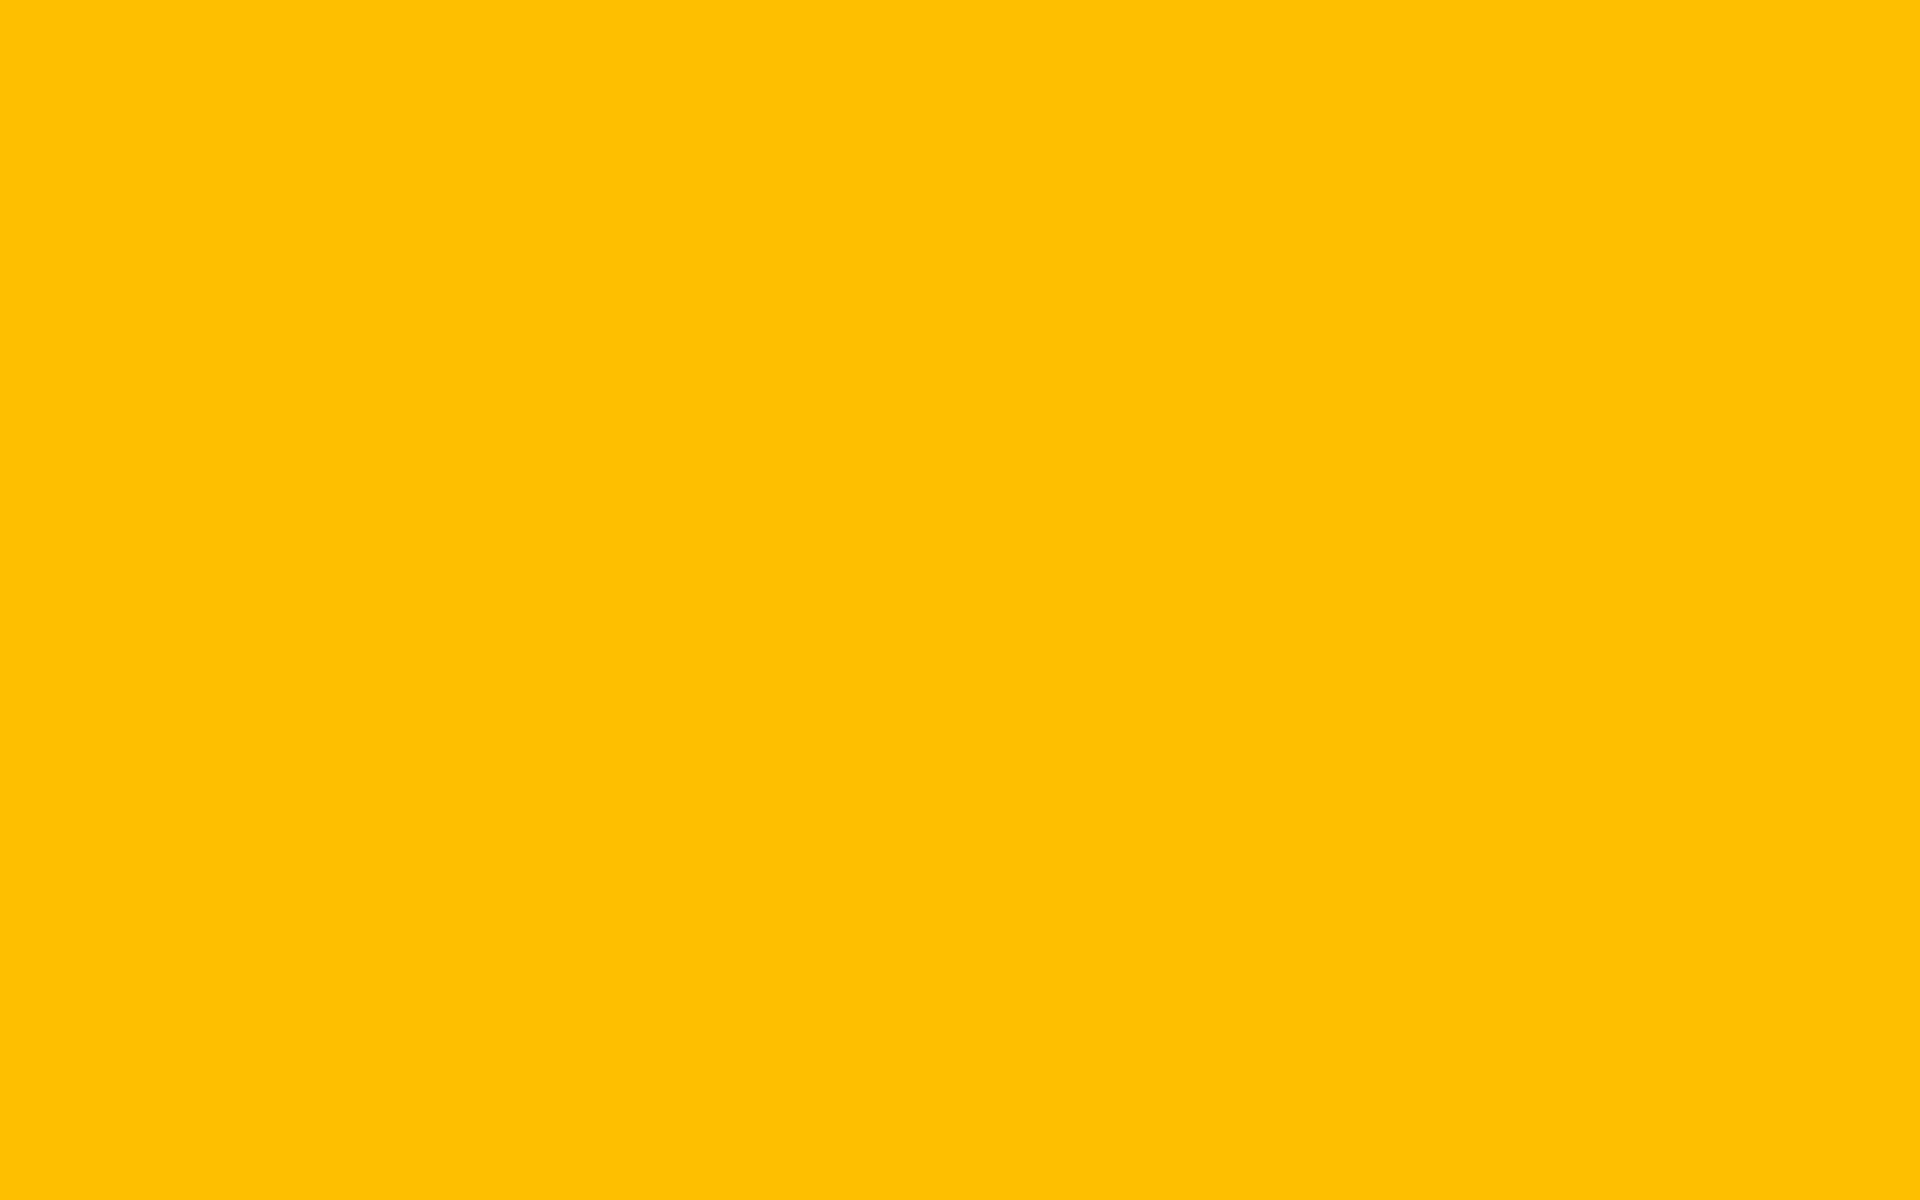 Yellow Solid Color Wallpaper 49776 1920x1200 px HDWallSourcecom